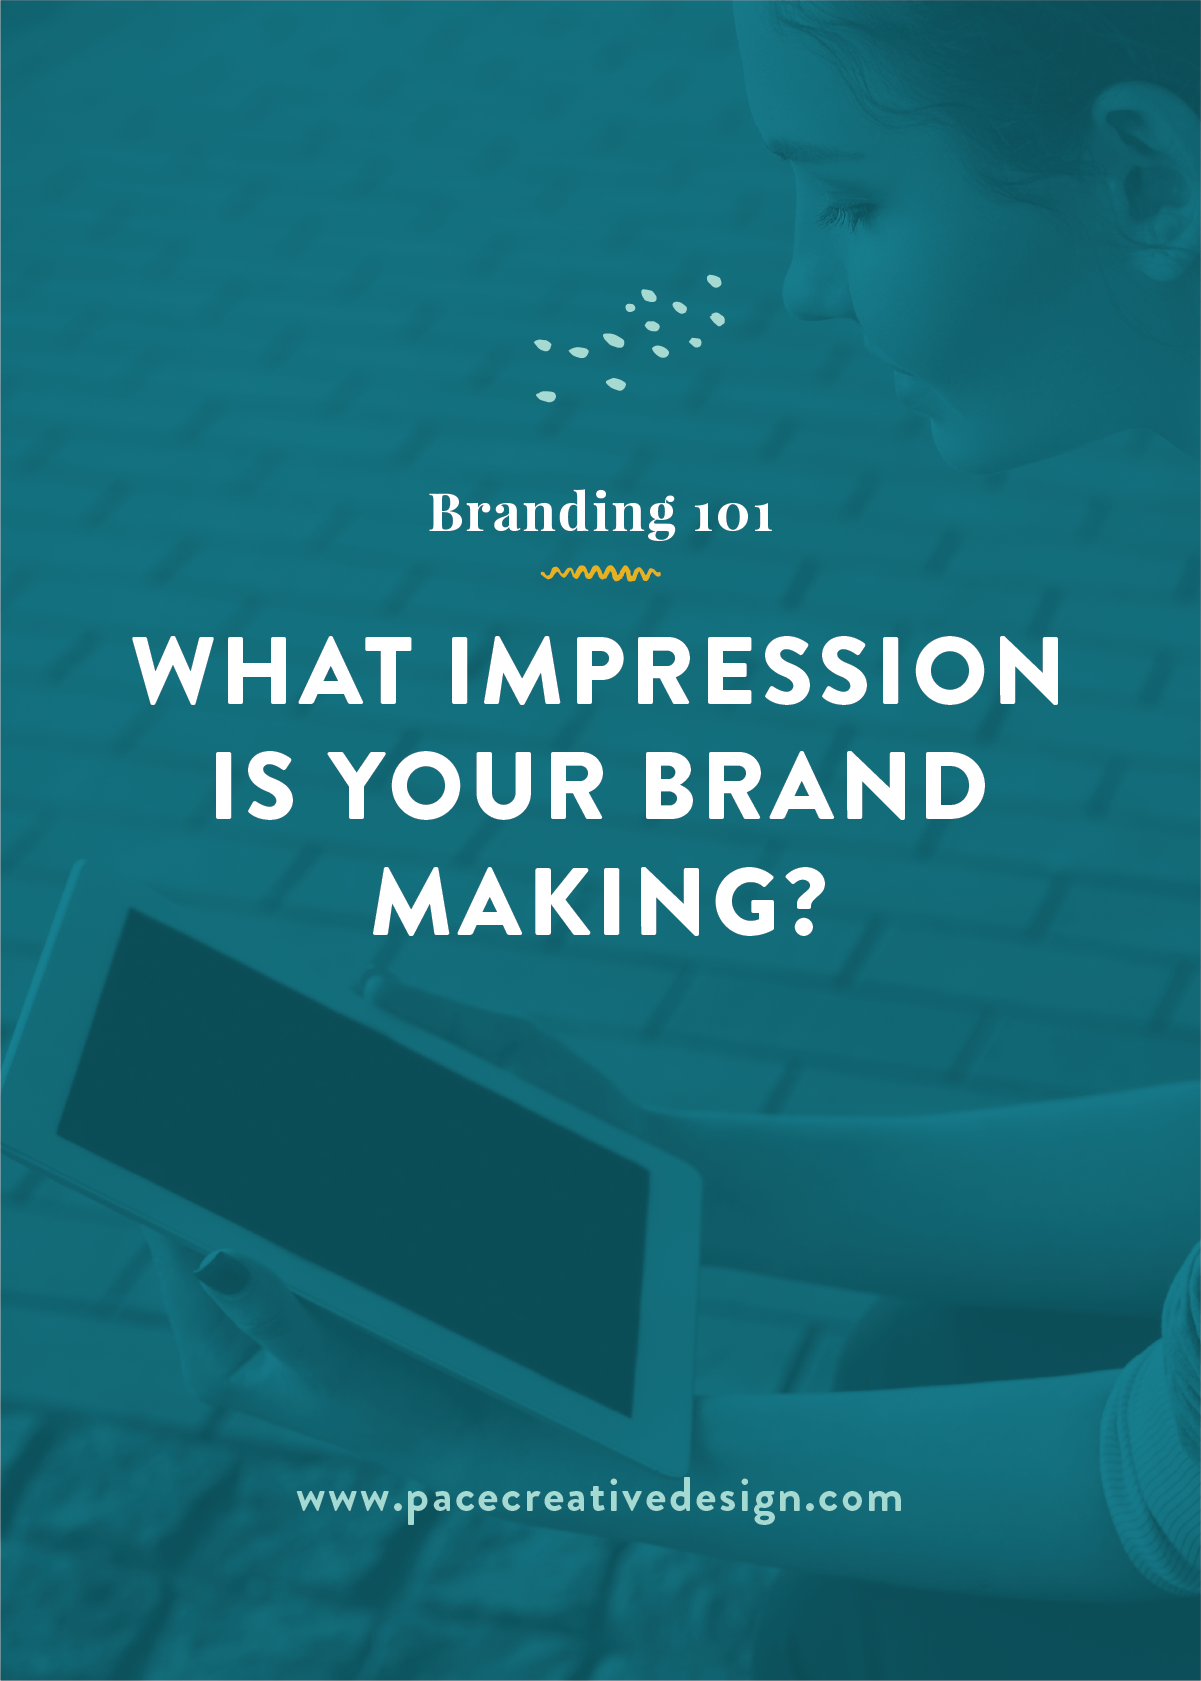 What Impression is Your Brand Making? | Pace Creative Design Studio